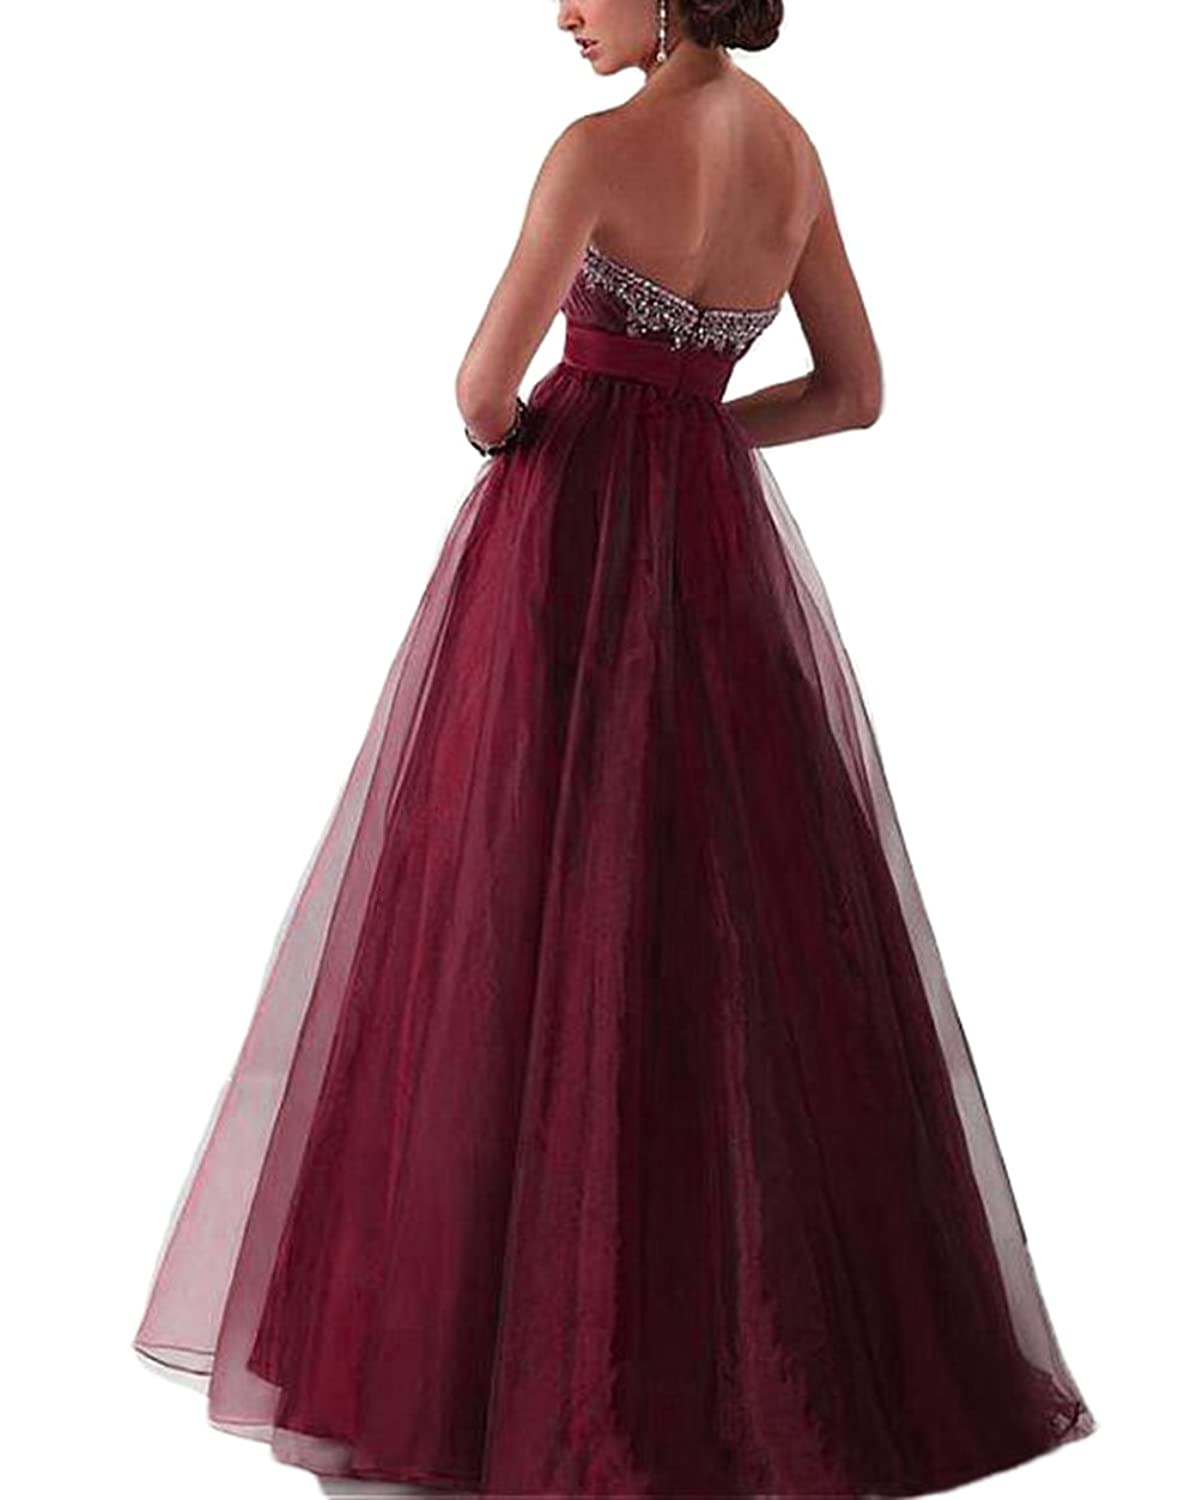 Veilove Burgundy Prom Dresses For Women Long With Beadings Burgundy Vestidos Gala Gowns at Amazon Womens Clothing store: